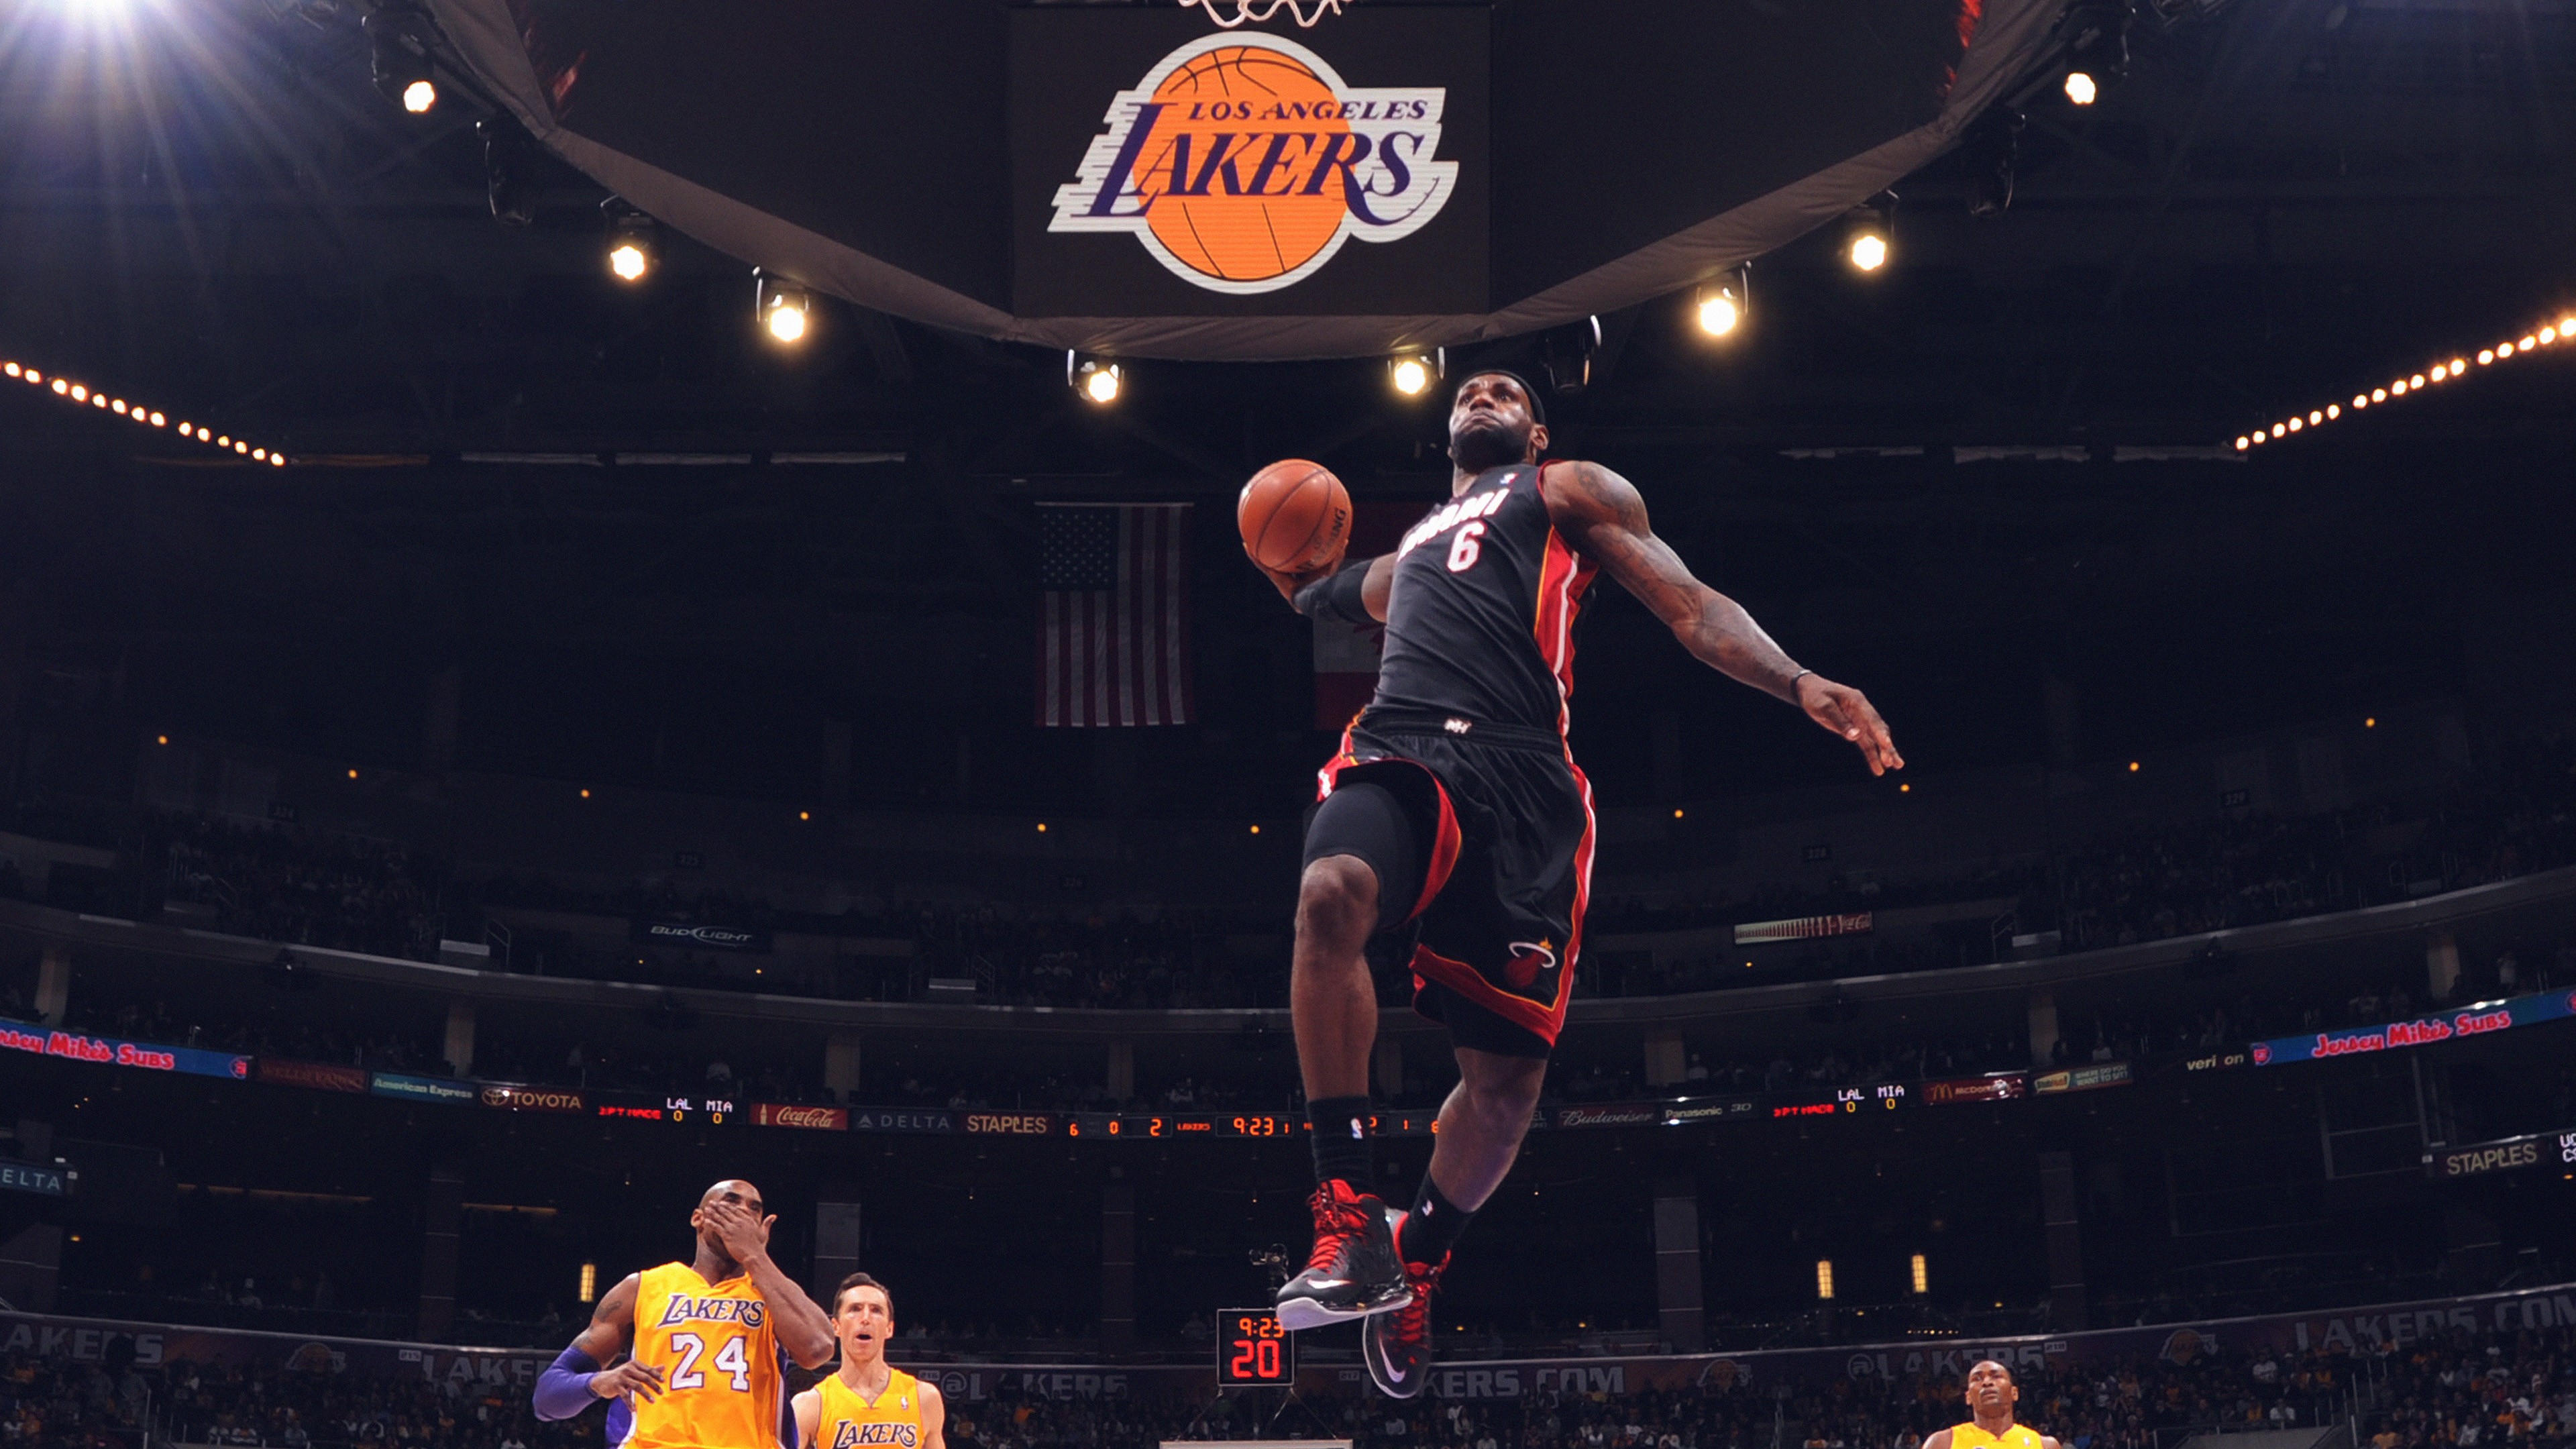 Hi84 Lebron James Nba Basketball Dunk Wallpaper